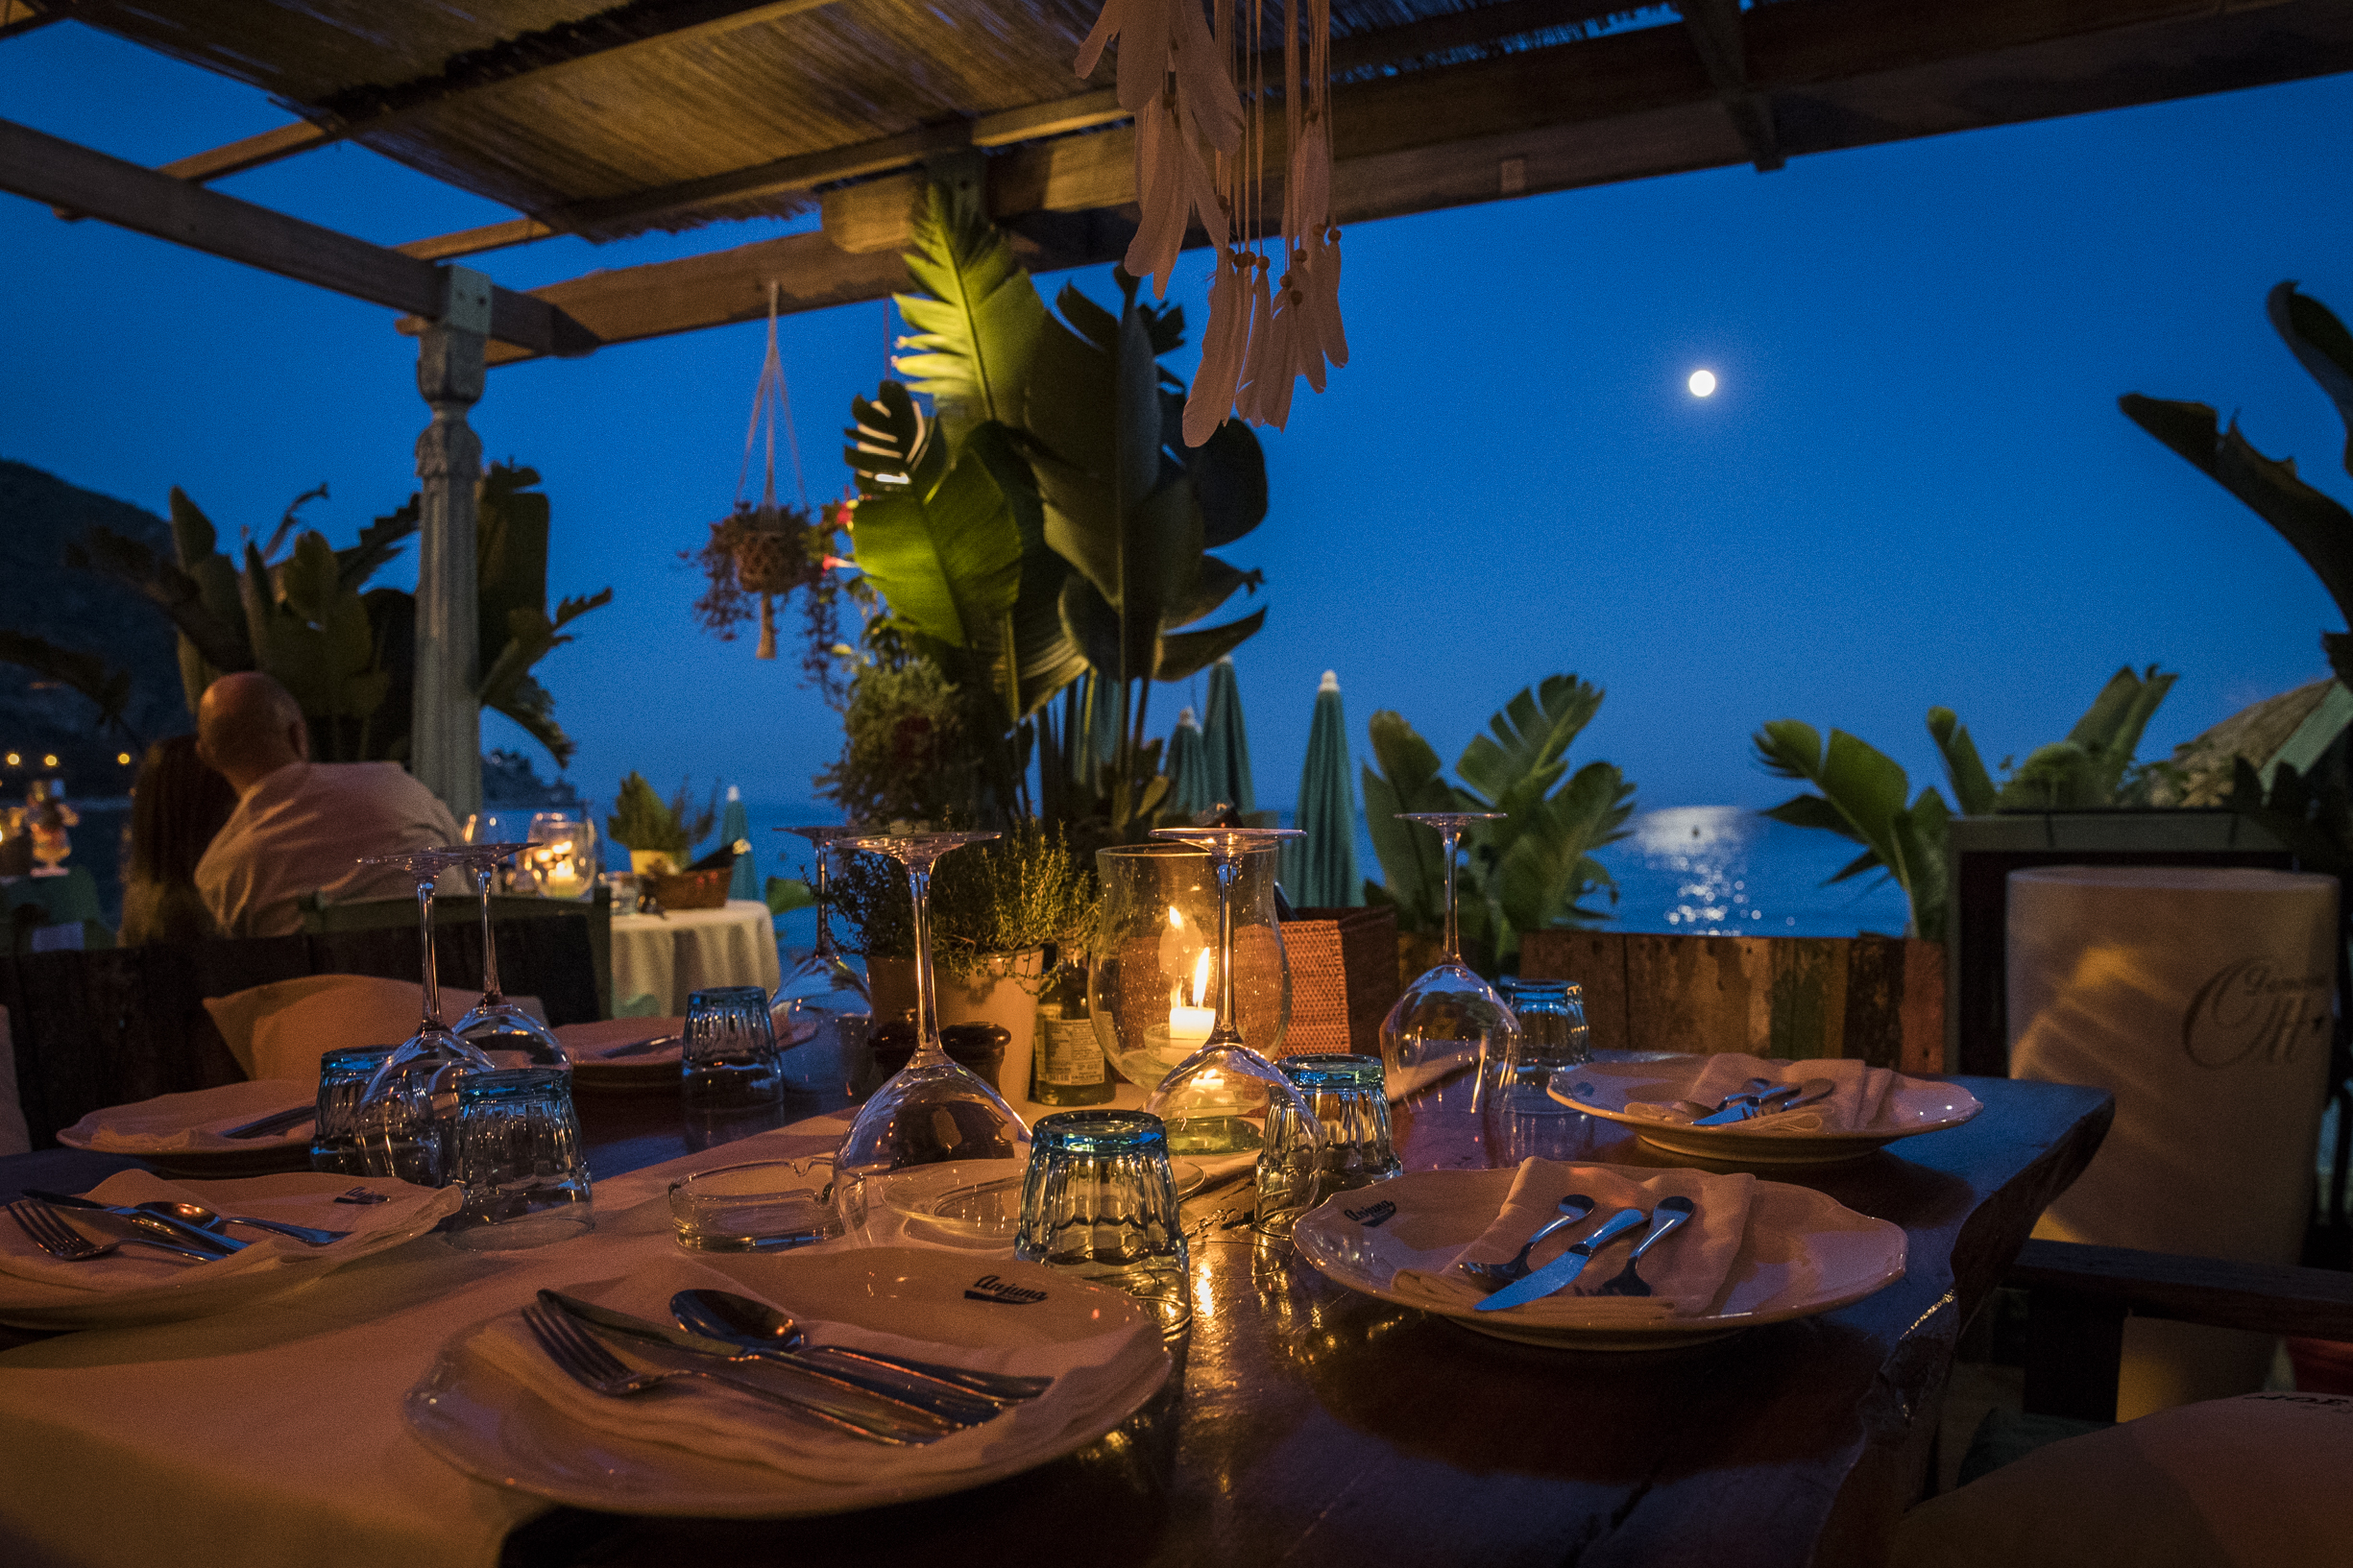 Romantic dinner table at sundown at Anjuna, a beach restaurant by the Mediterranean sea.